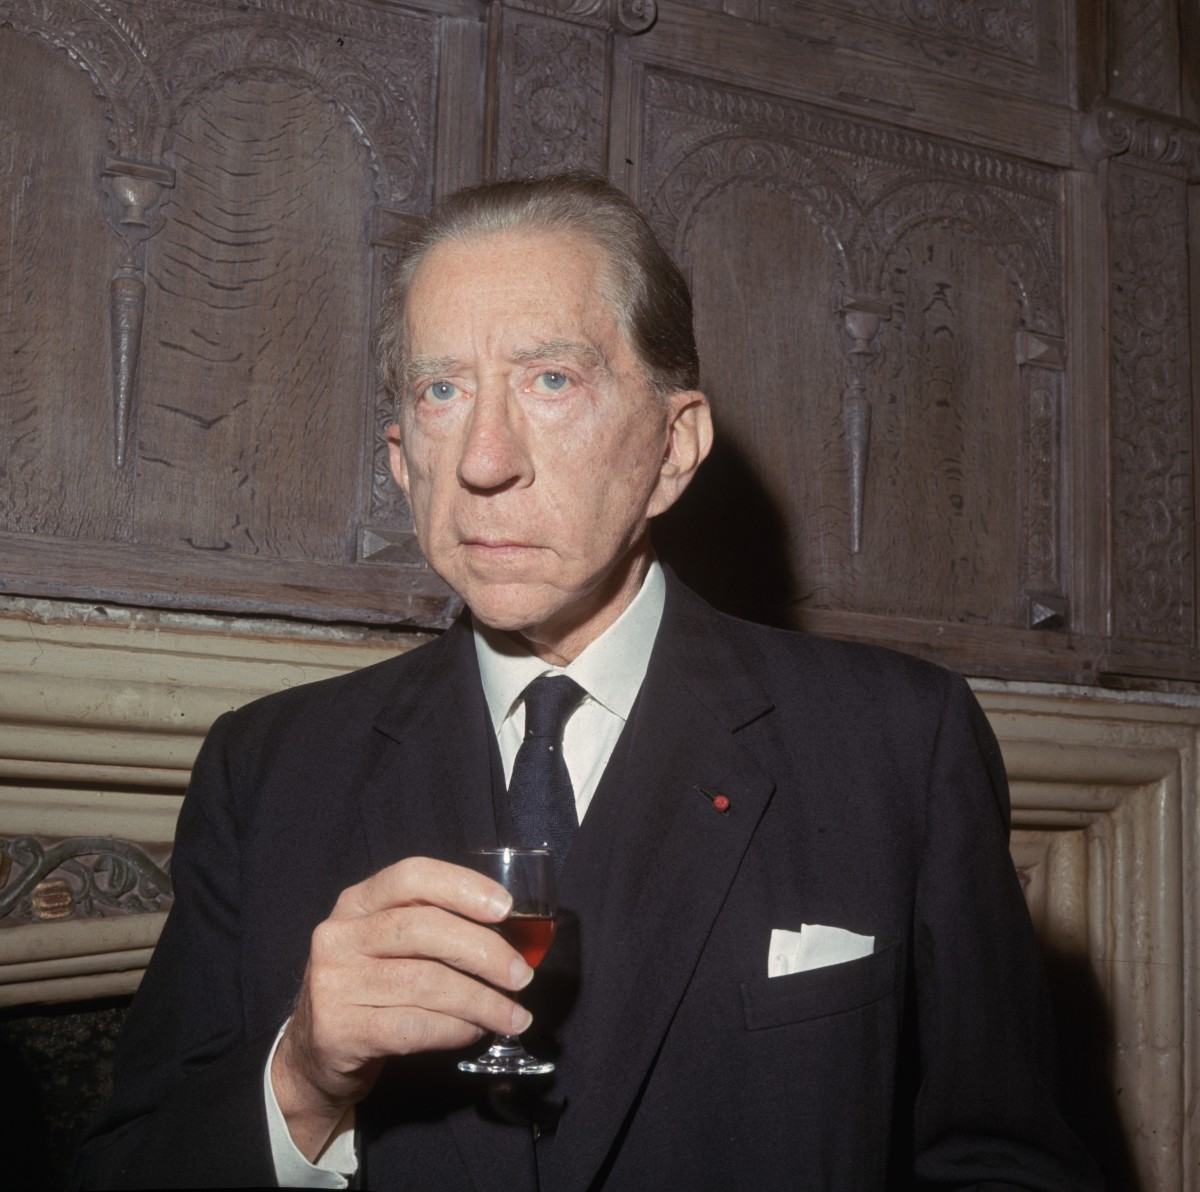 John Paul Getty Photo